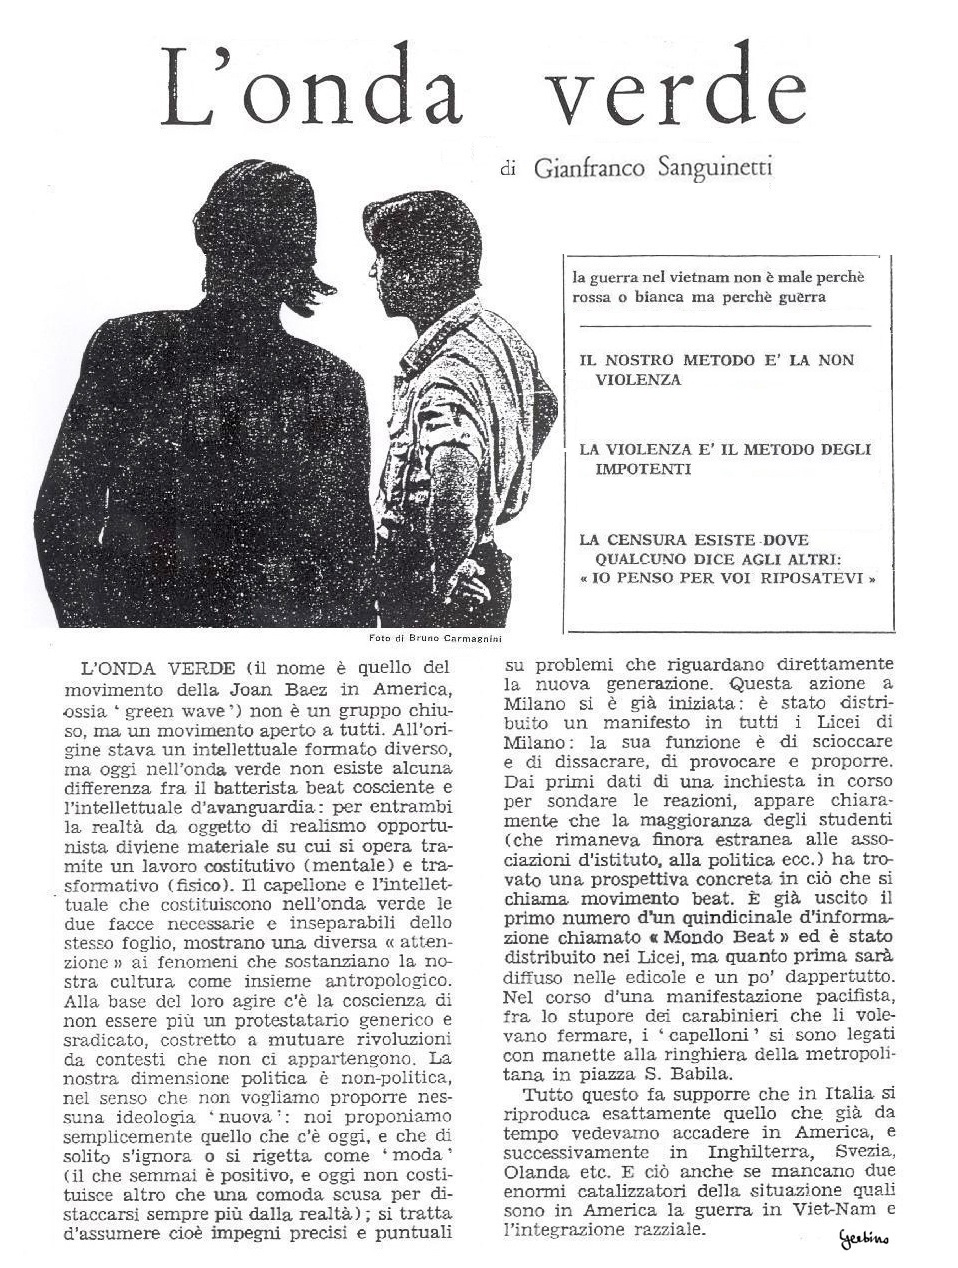 Gianfranco Sanguinetti would become an outstanding member of the Situationists